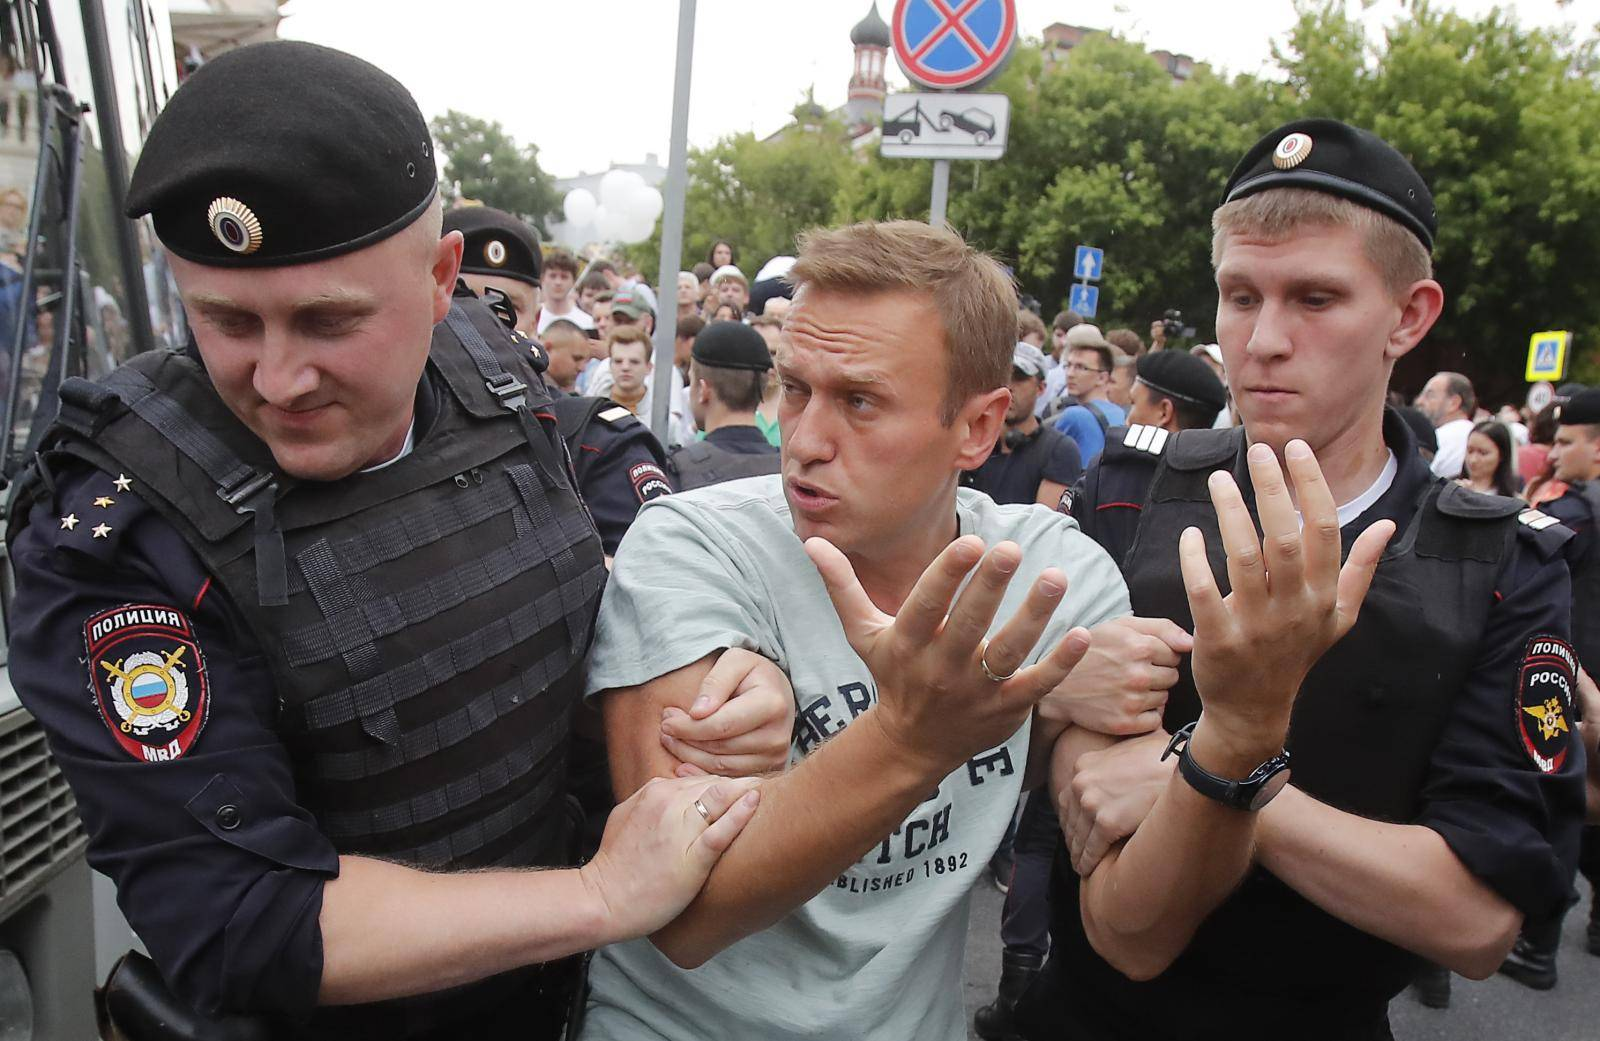 Policemen detain Russian opposition leader Navalny during a rally in support of investigative journalist Golunov in Moscow